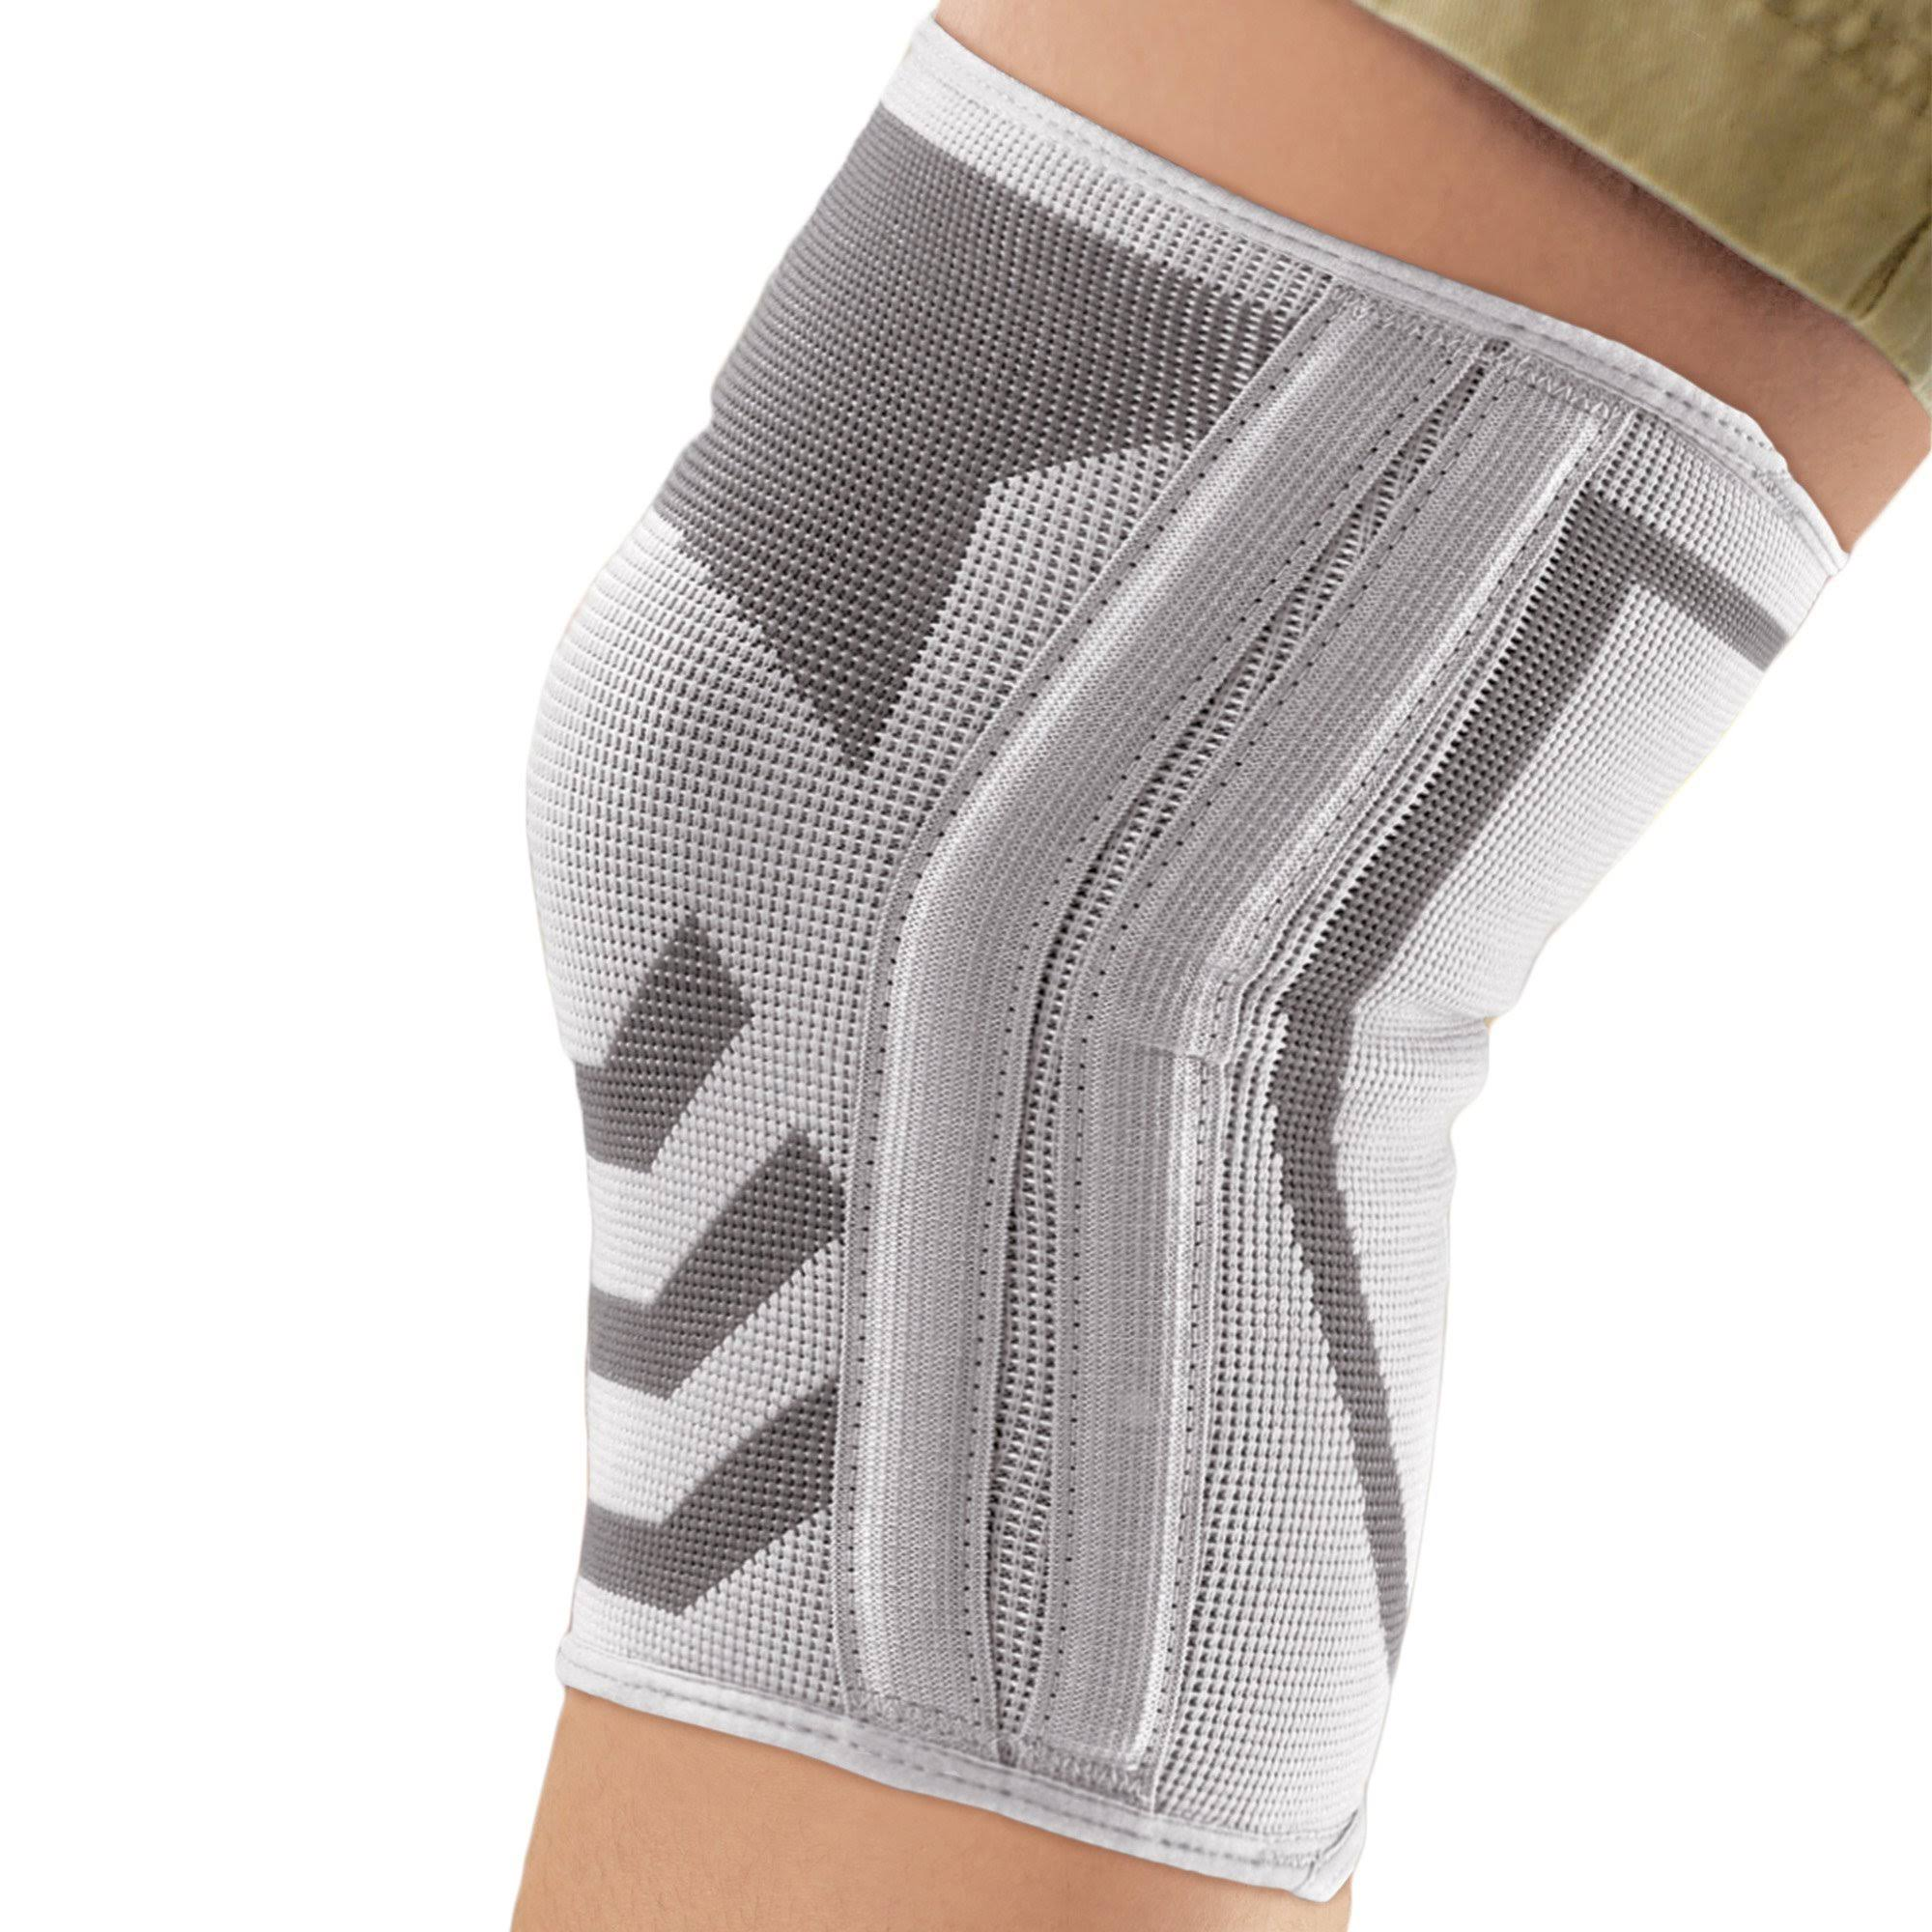 Ace Knitted Knee Brace With Side Stabilizers - X-Large